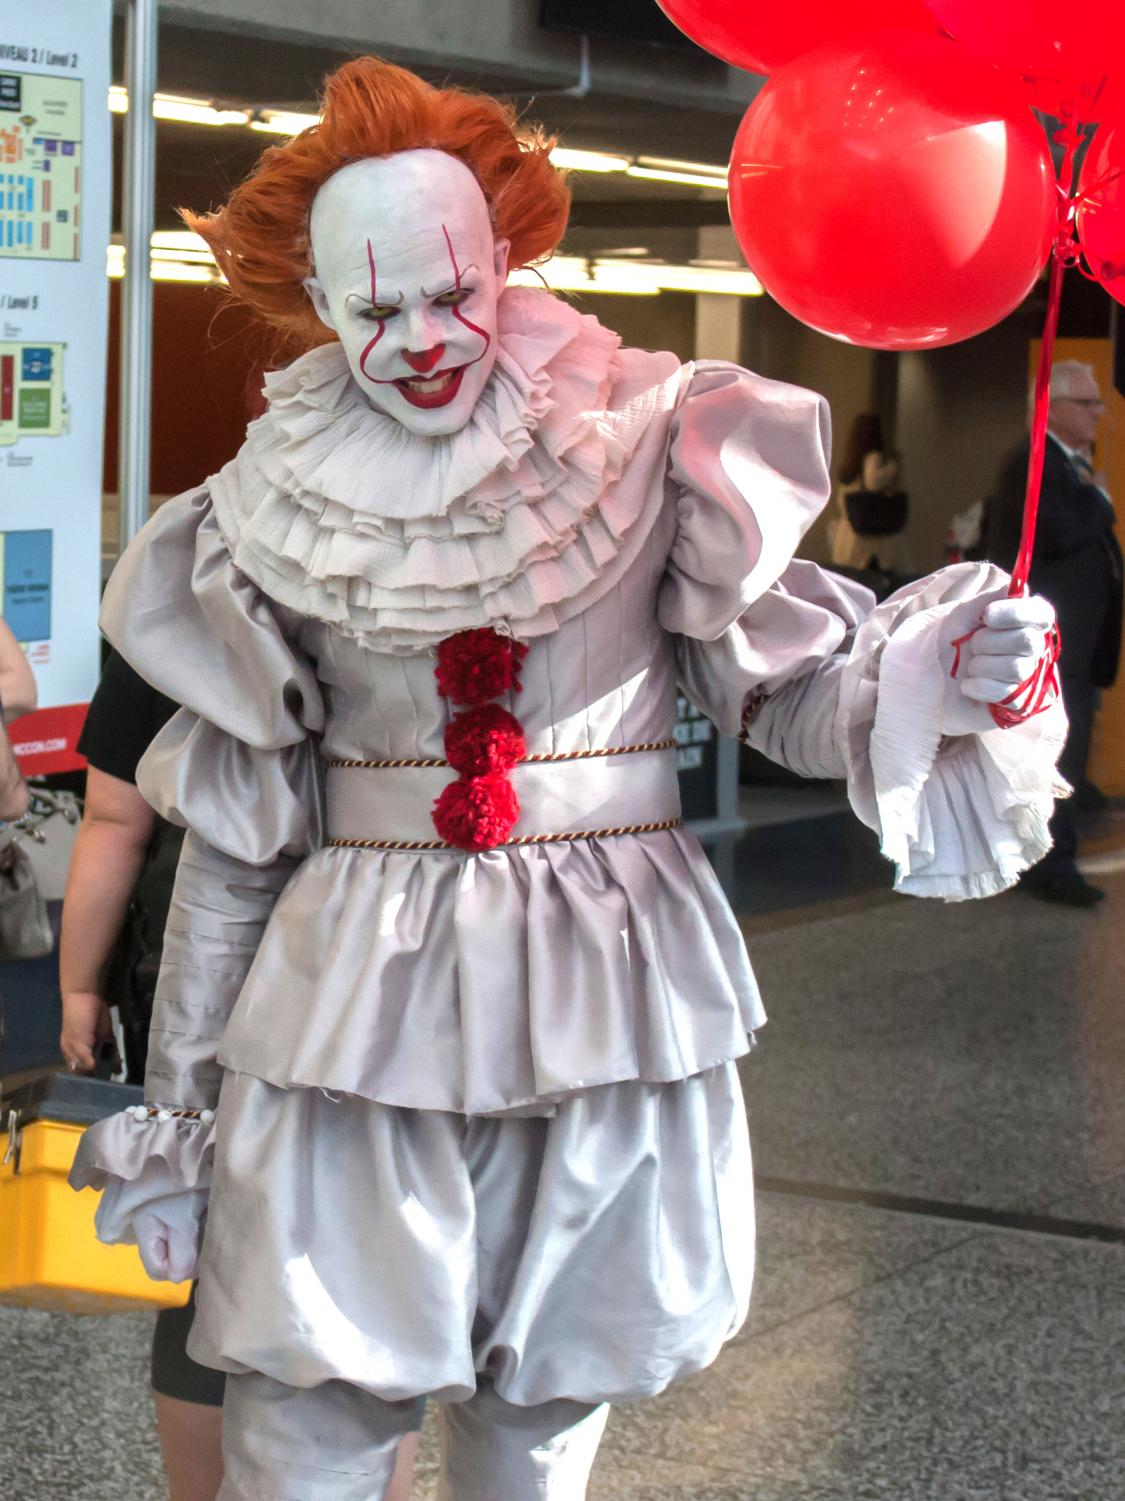 Pennywise leaves Derry, Maine and infiltrates local mall. Earlier this month, theaters were filled with movie fanatics who had anticipated the next installment in the IT series.